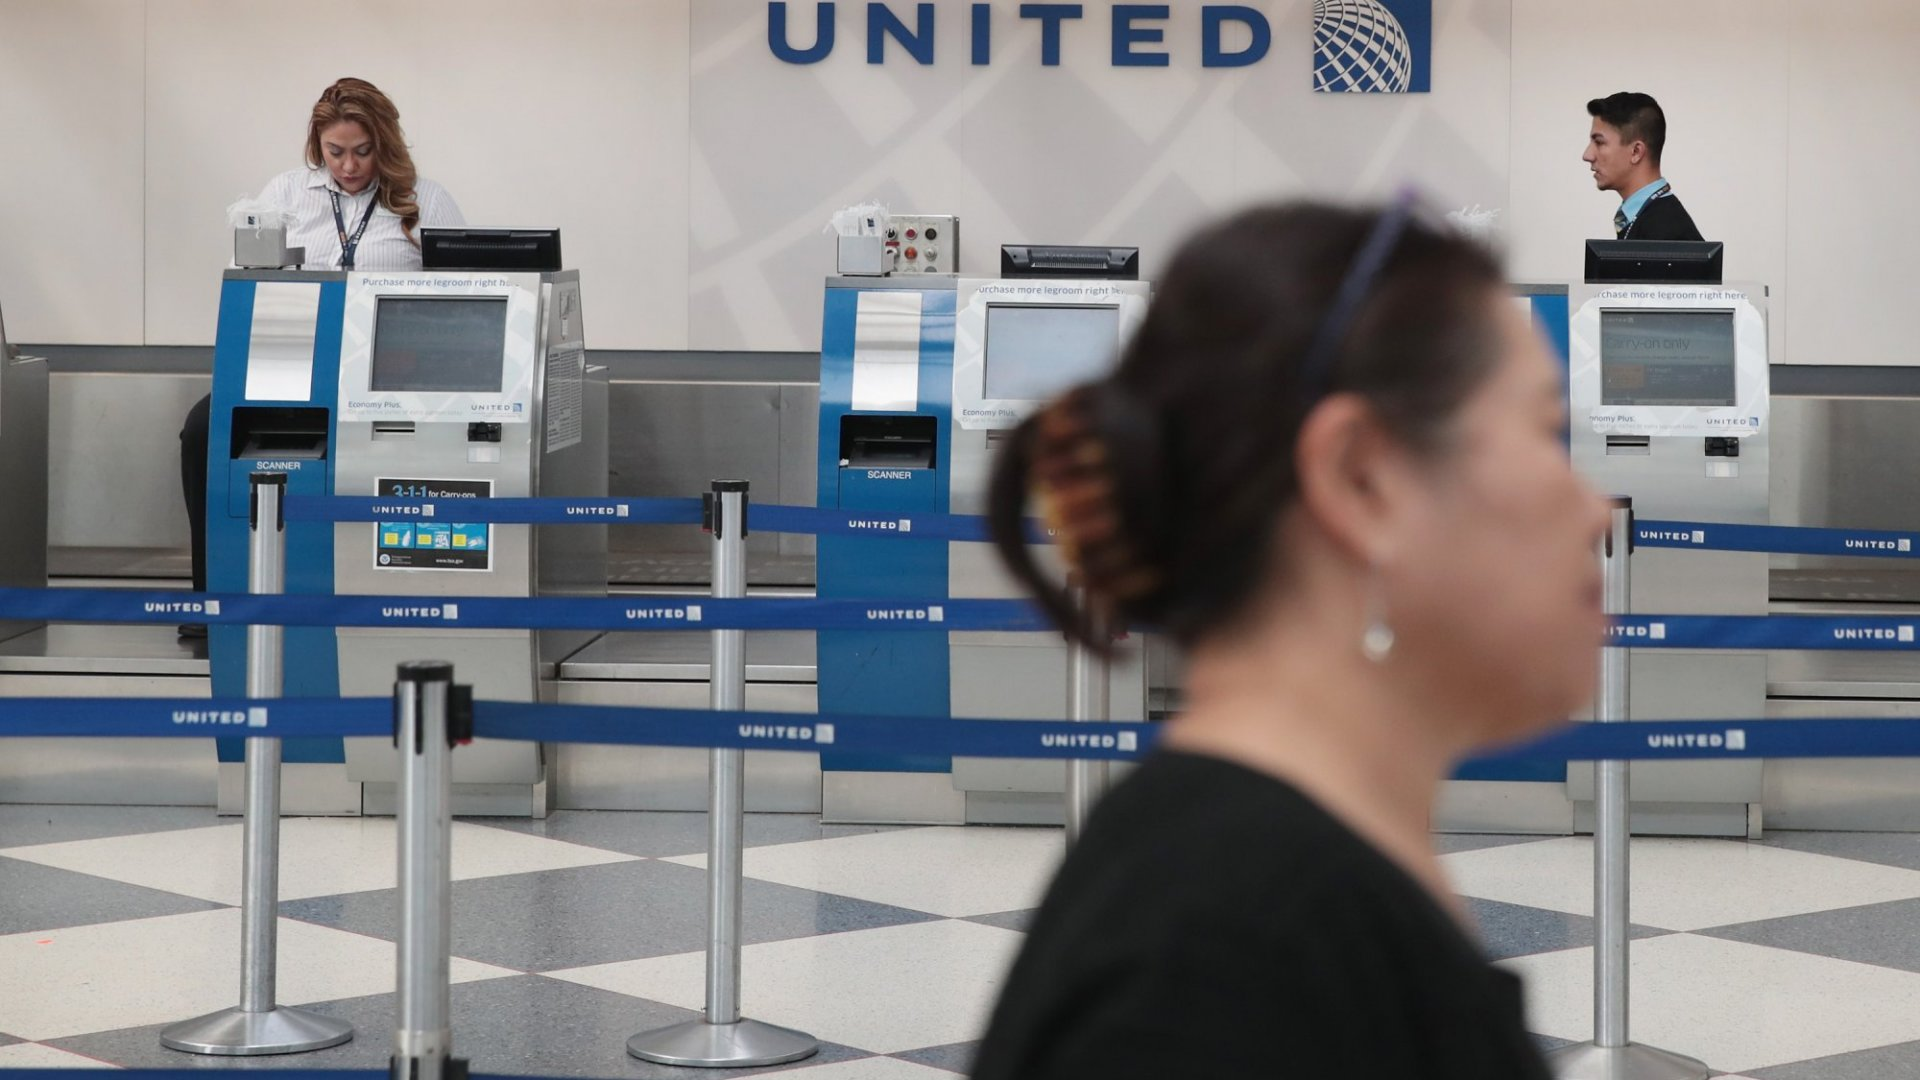 United and Uber Have Delta and Lyft Laughing All the Way to the Bank